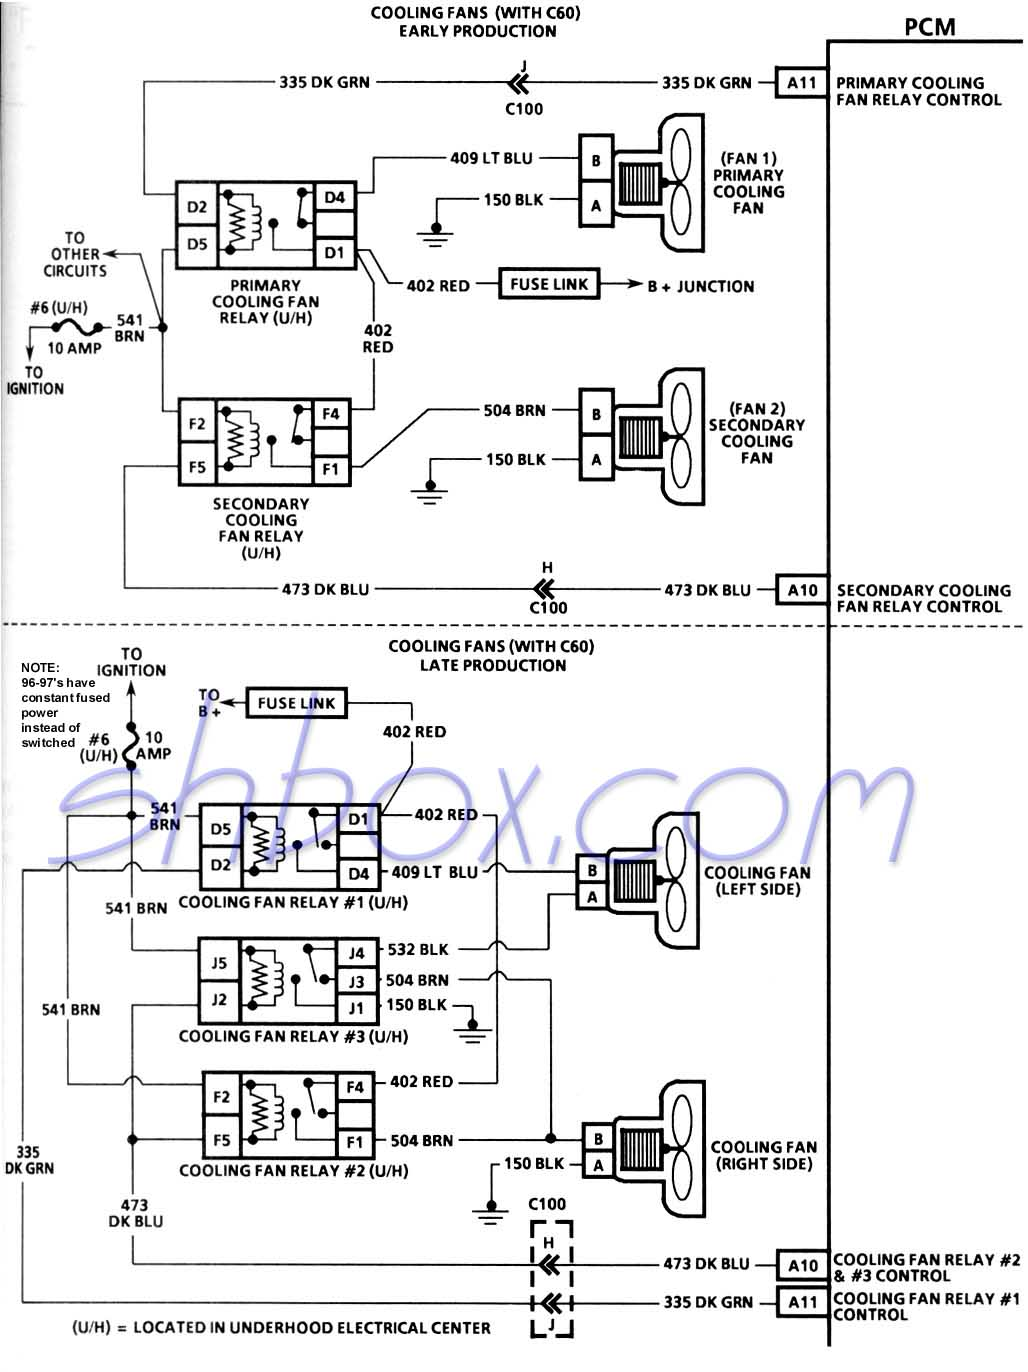 Cooling Fans Schematic